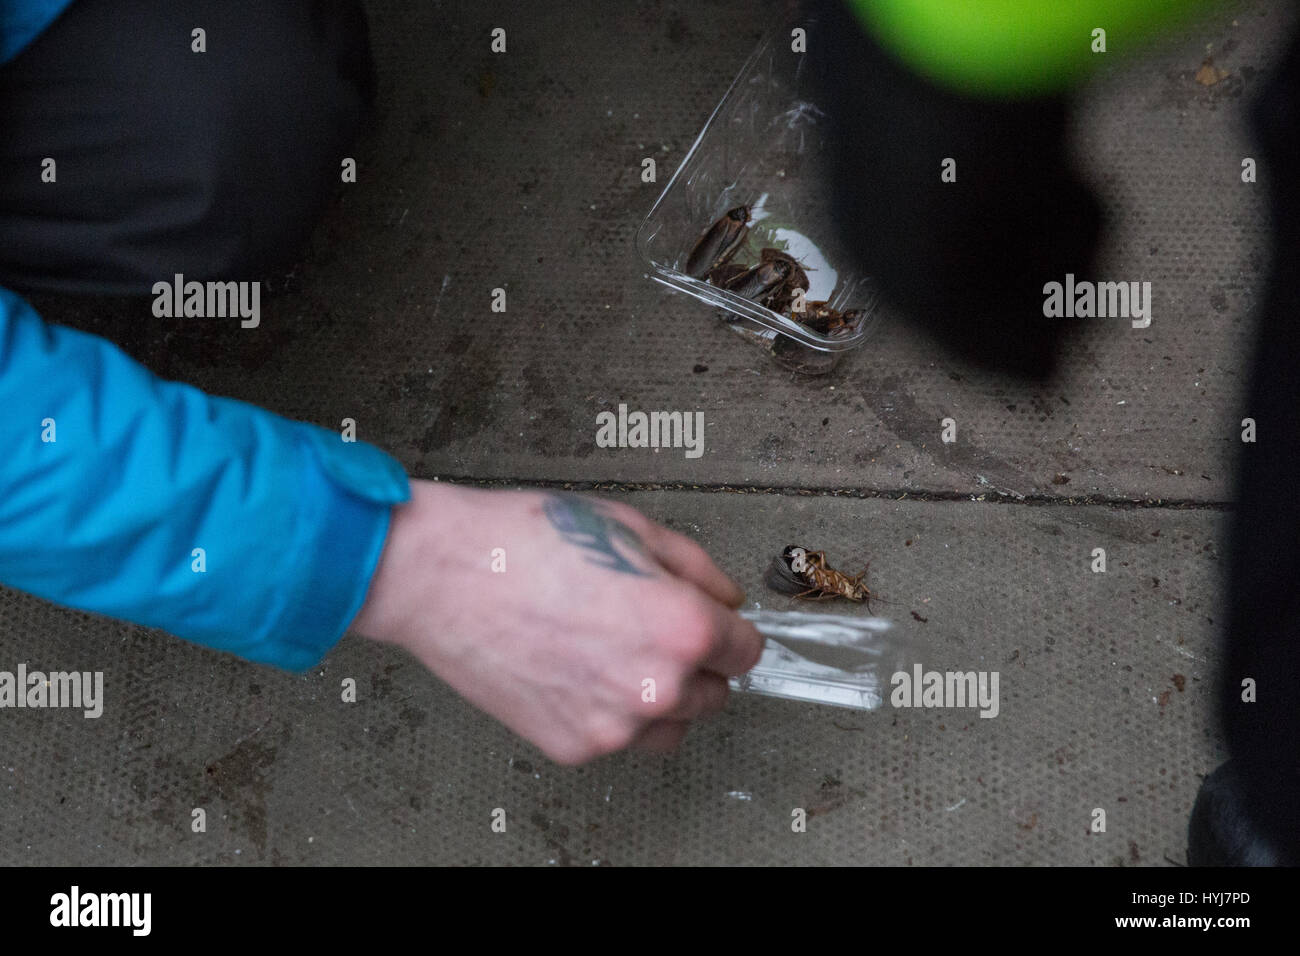 London, UK. 4th April, 2017. An activist collects cockroaches after they were deposited outside the Property Developers' - Stock Image